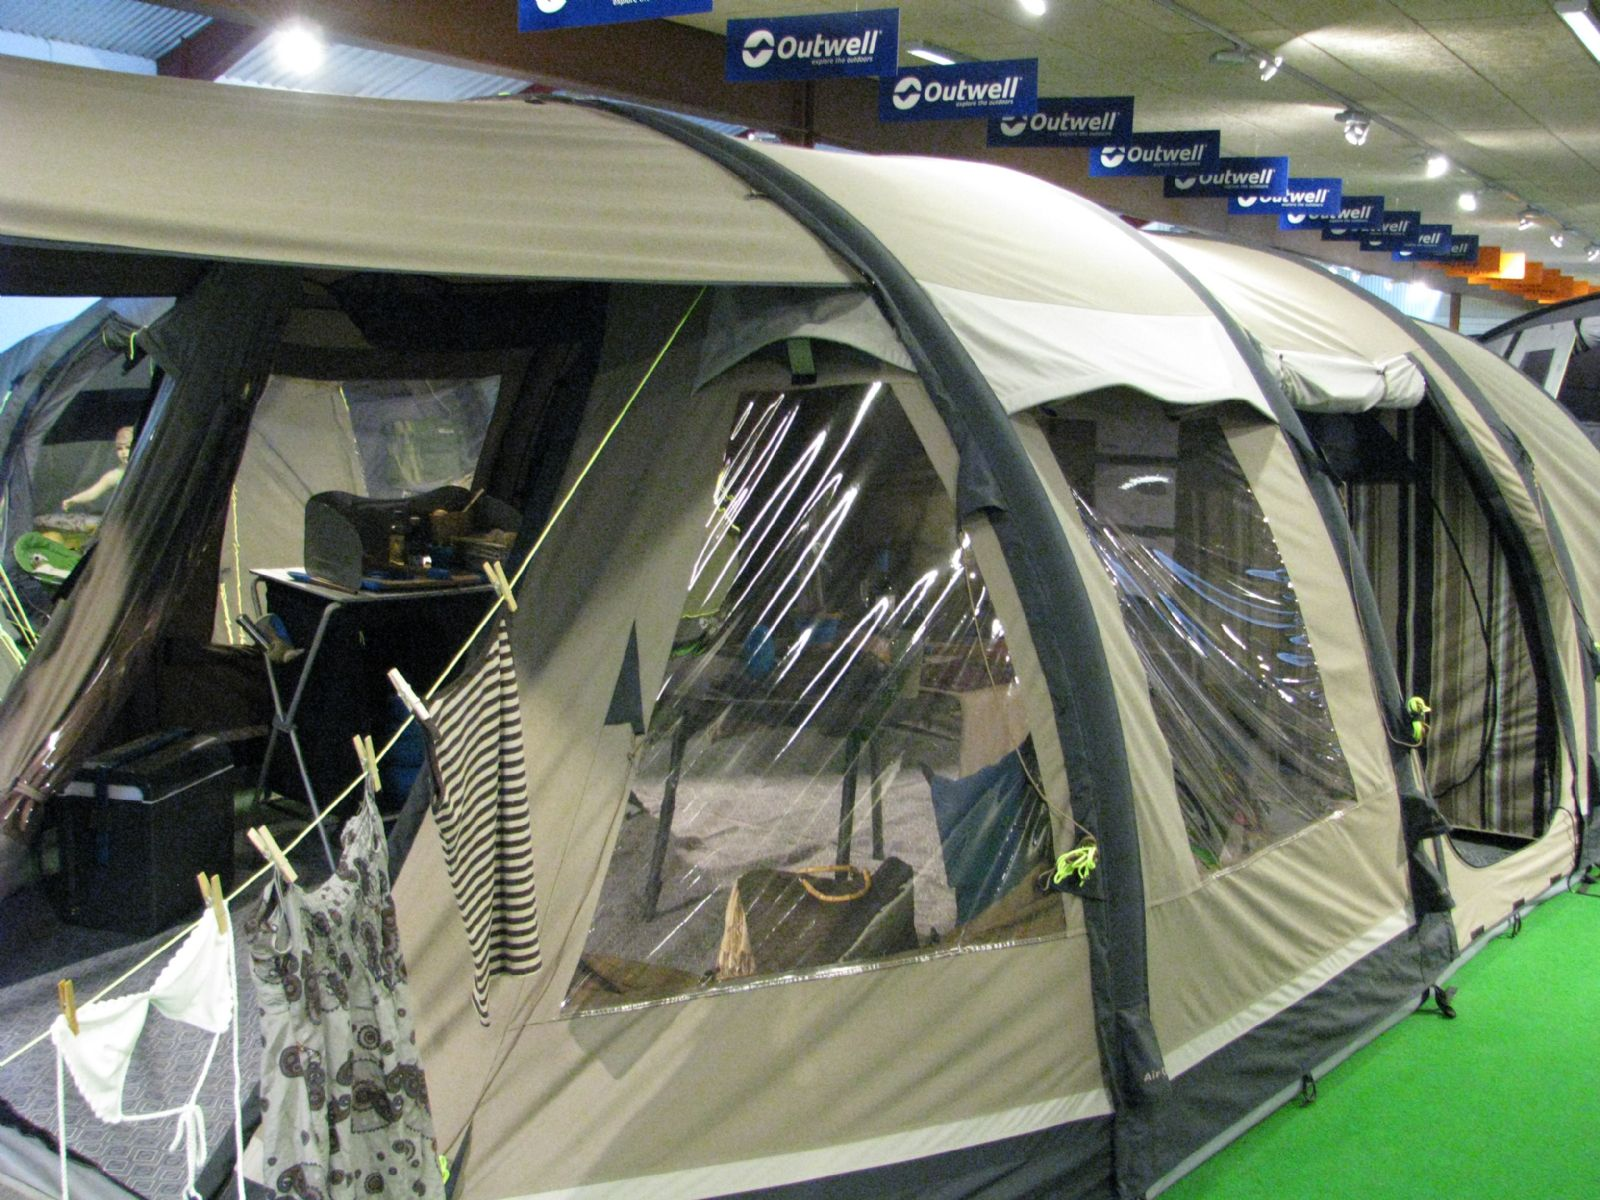 A six-berth polycotton inflatable tent with a zip-off canopy that provides shelter and shade and extends the already large living area. & Outwell 2015 Tents - Out and About Live